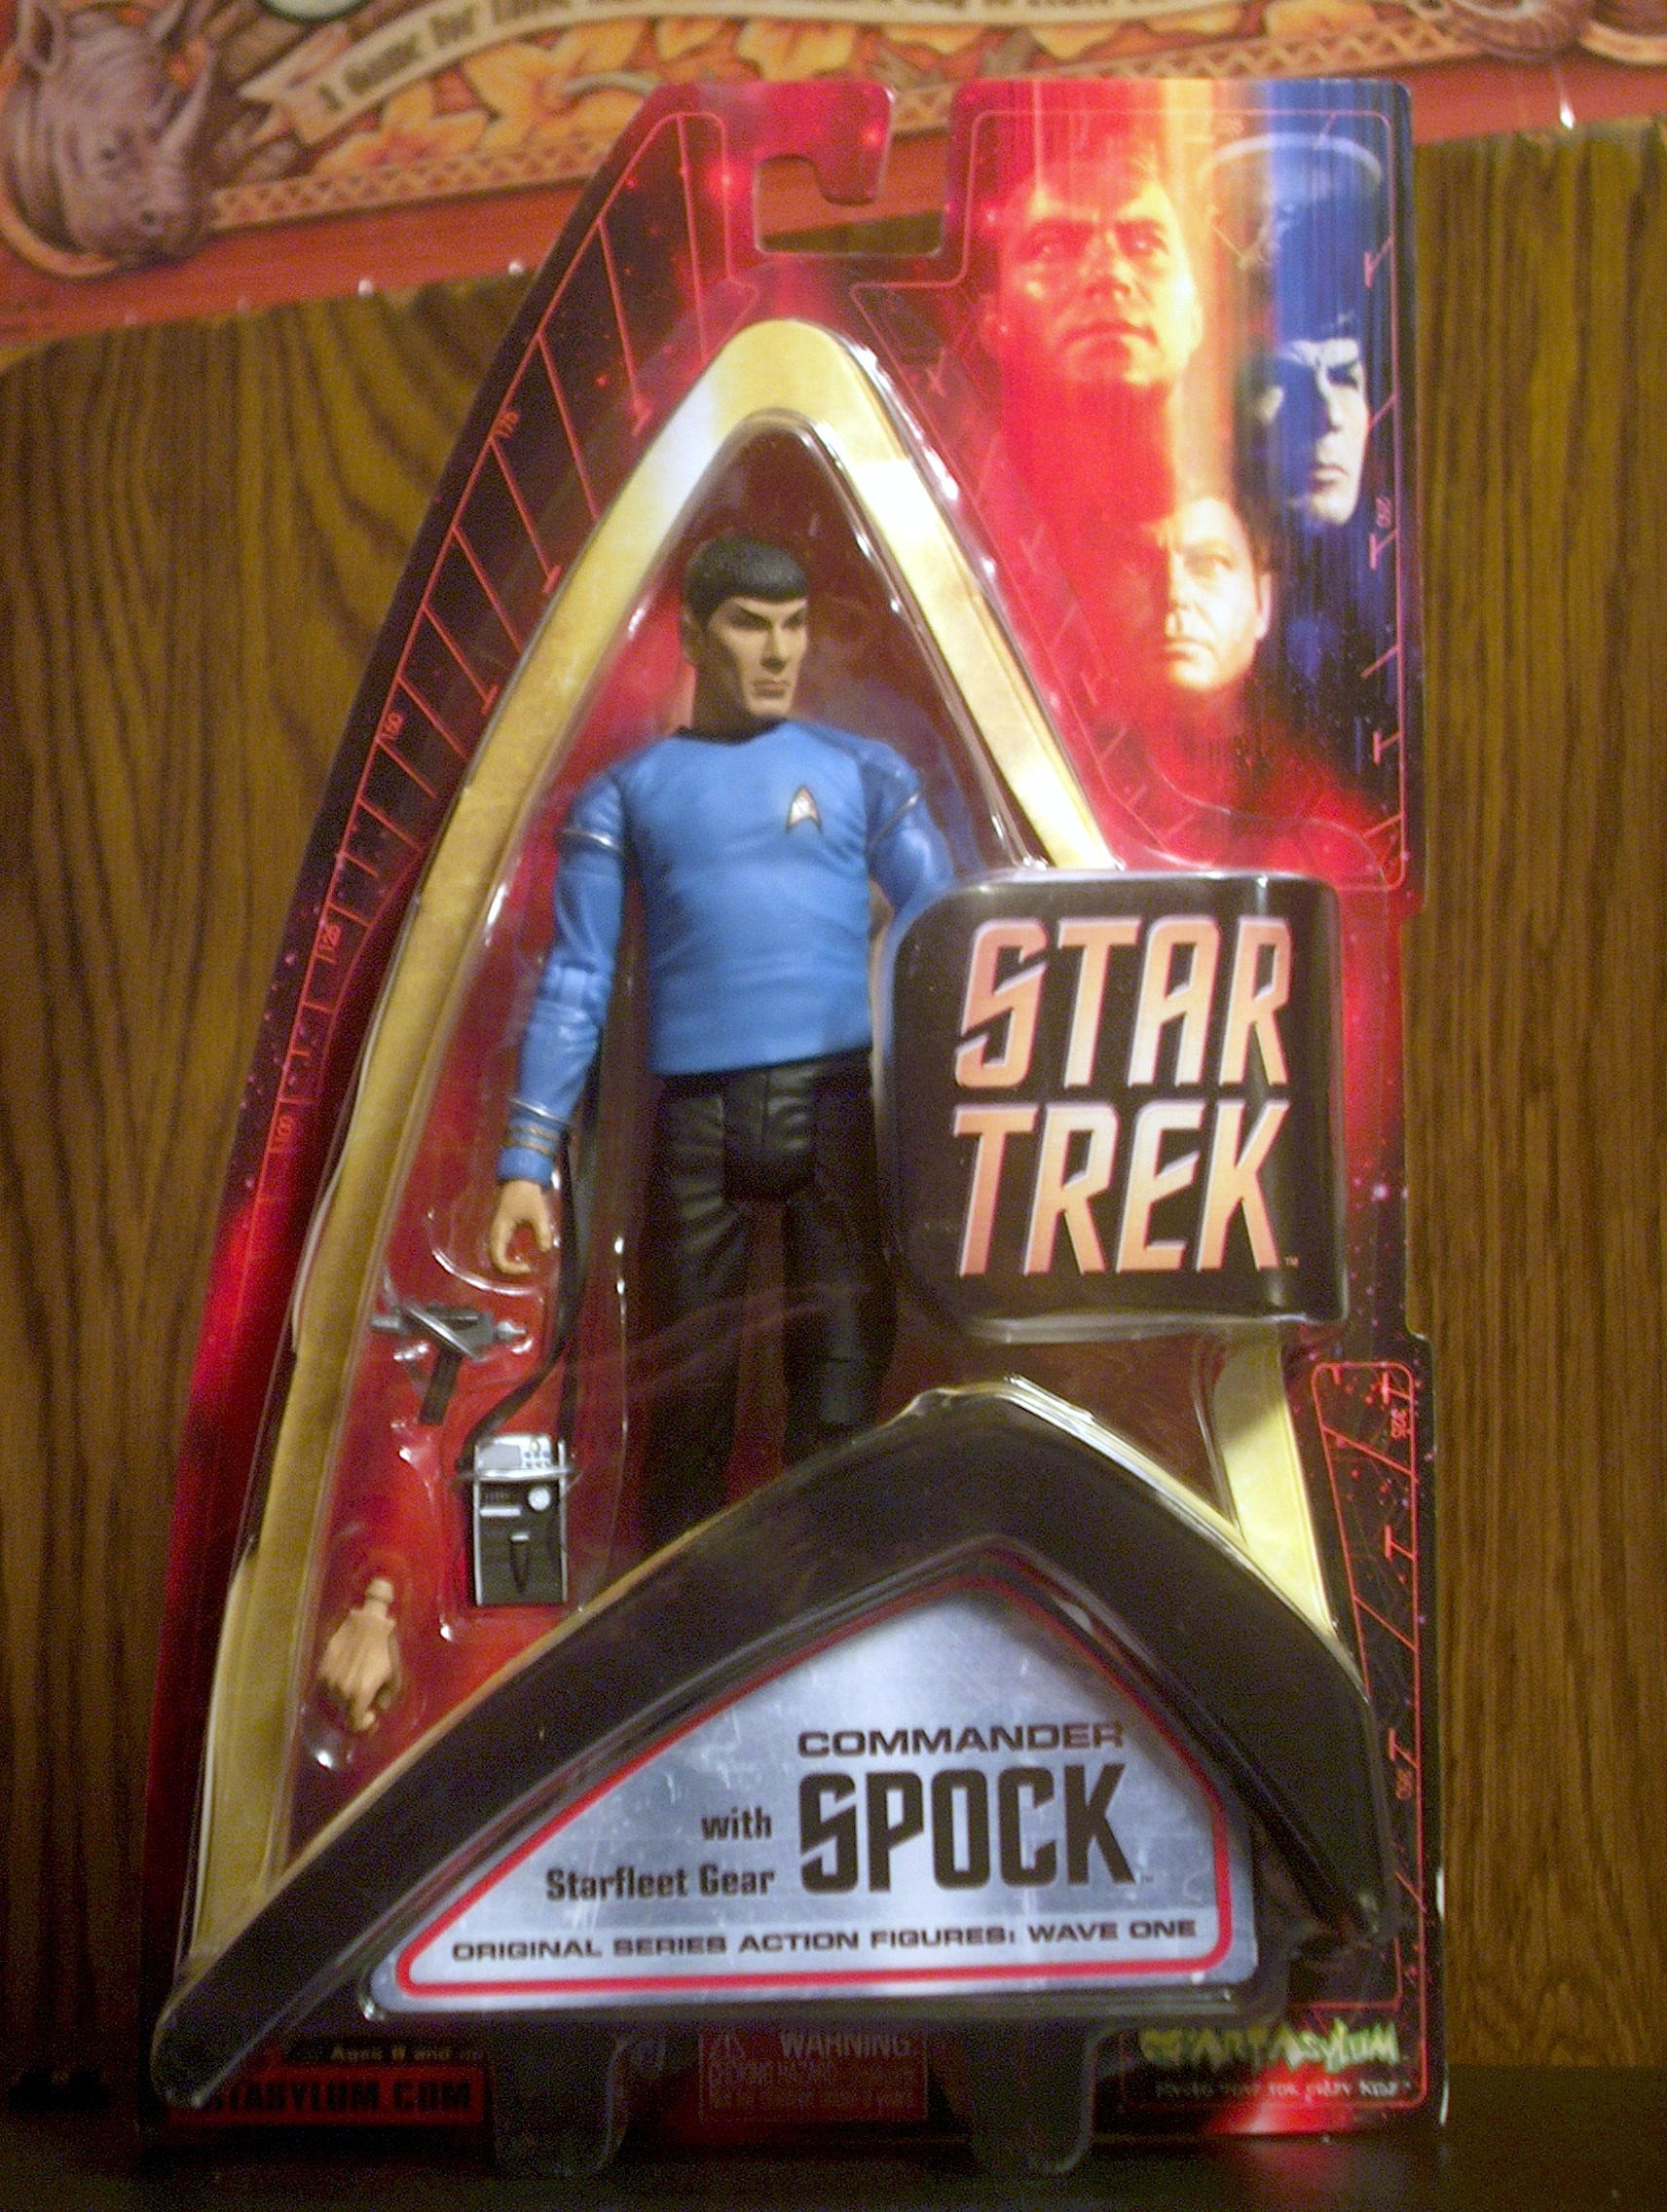 Commander Spock with Starfleet Gear